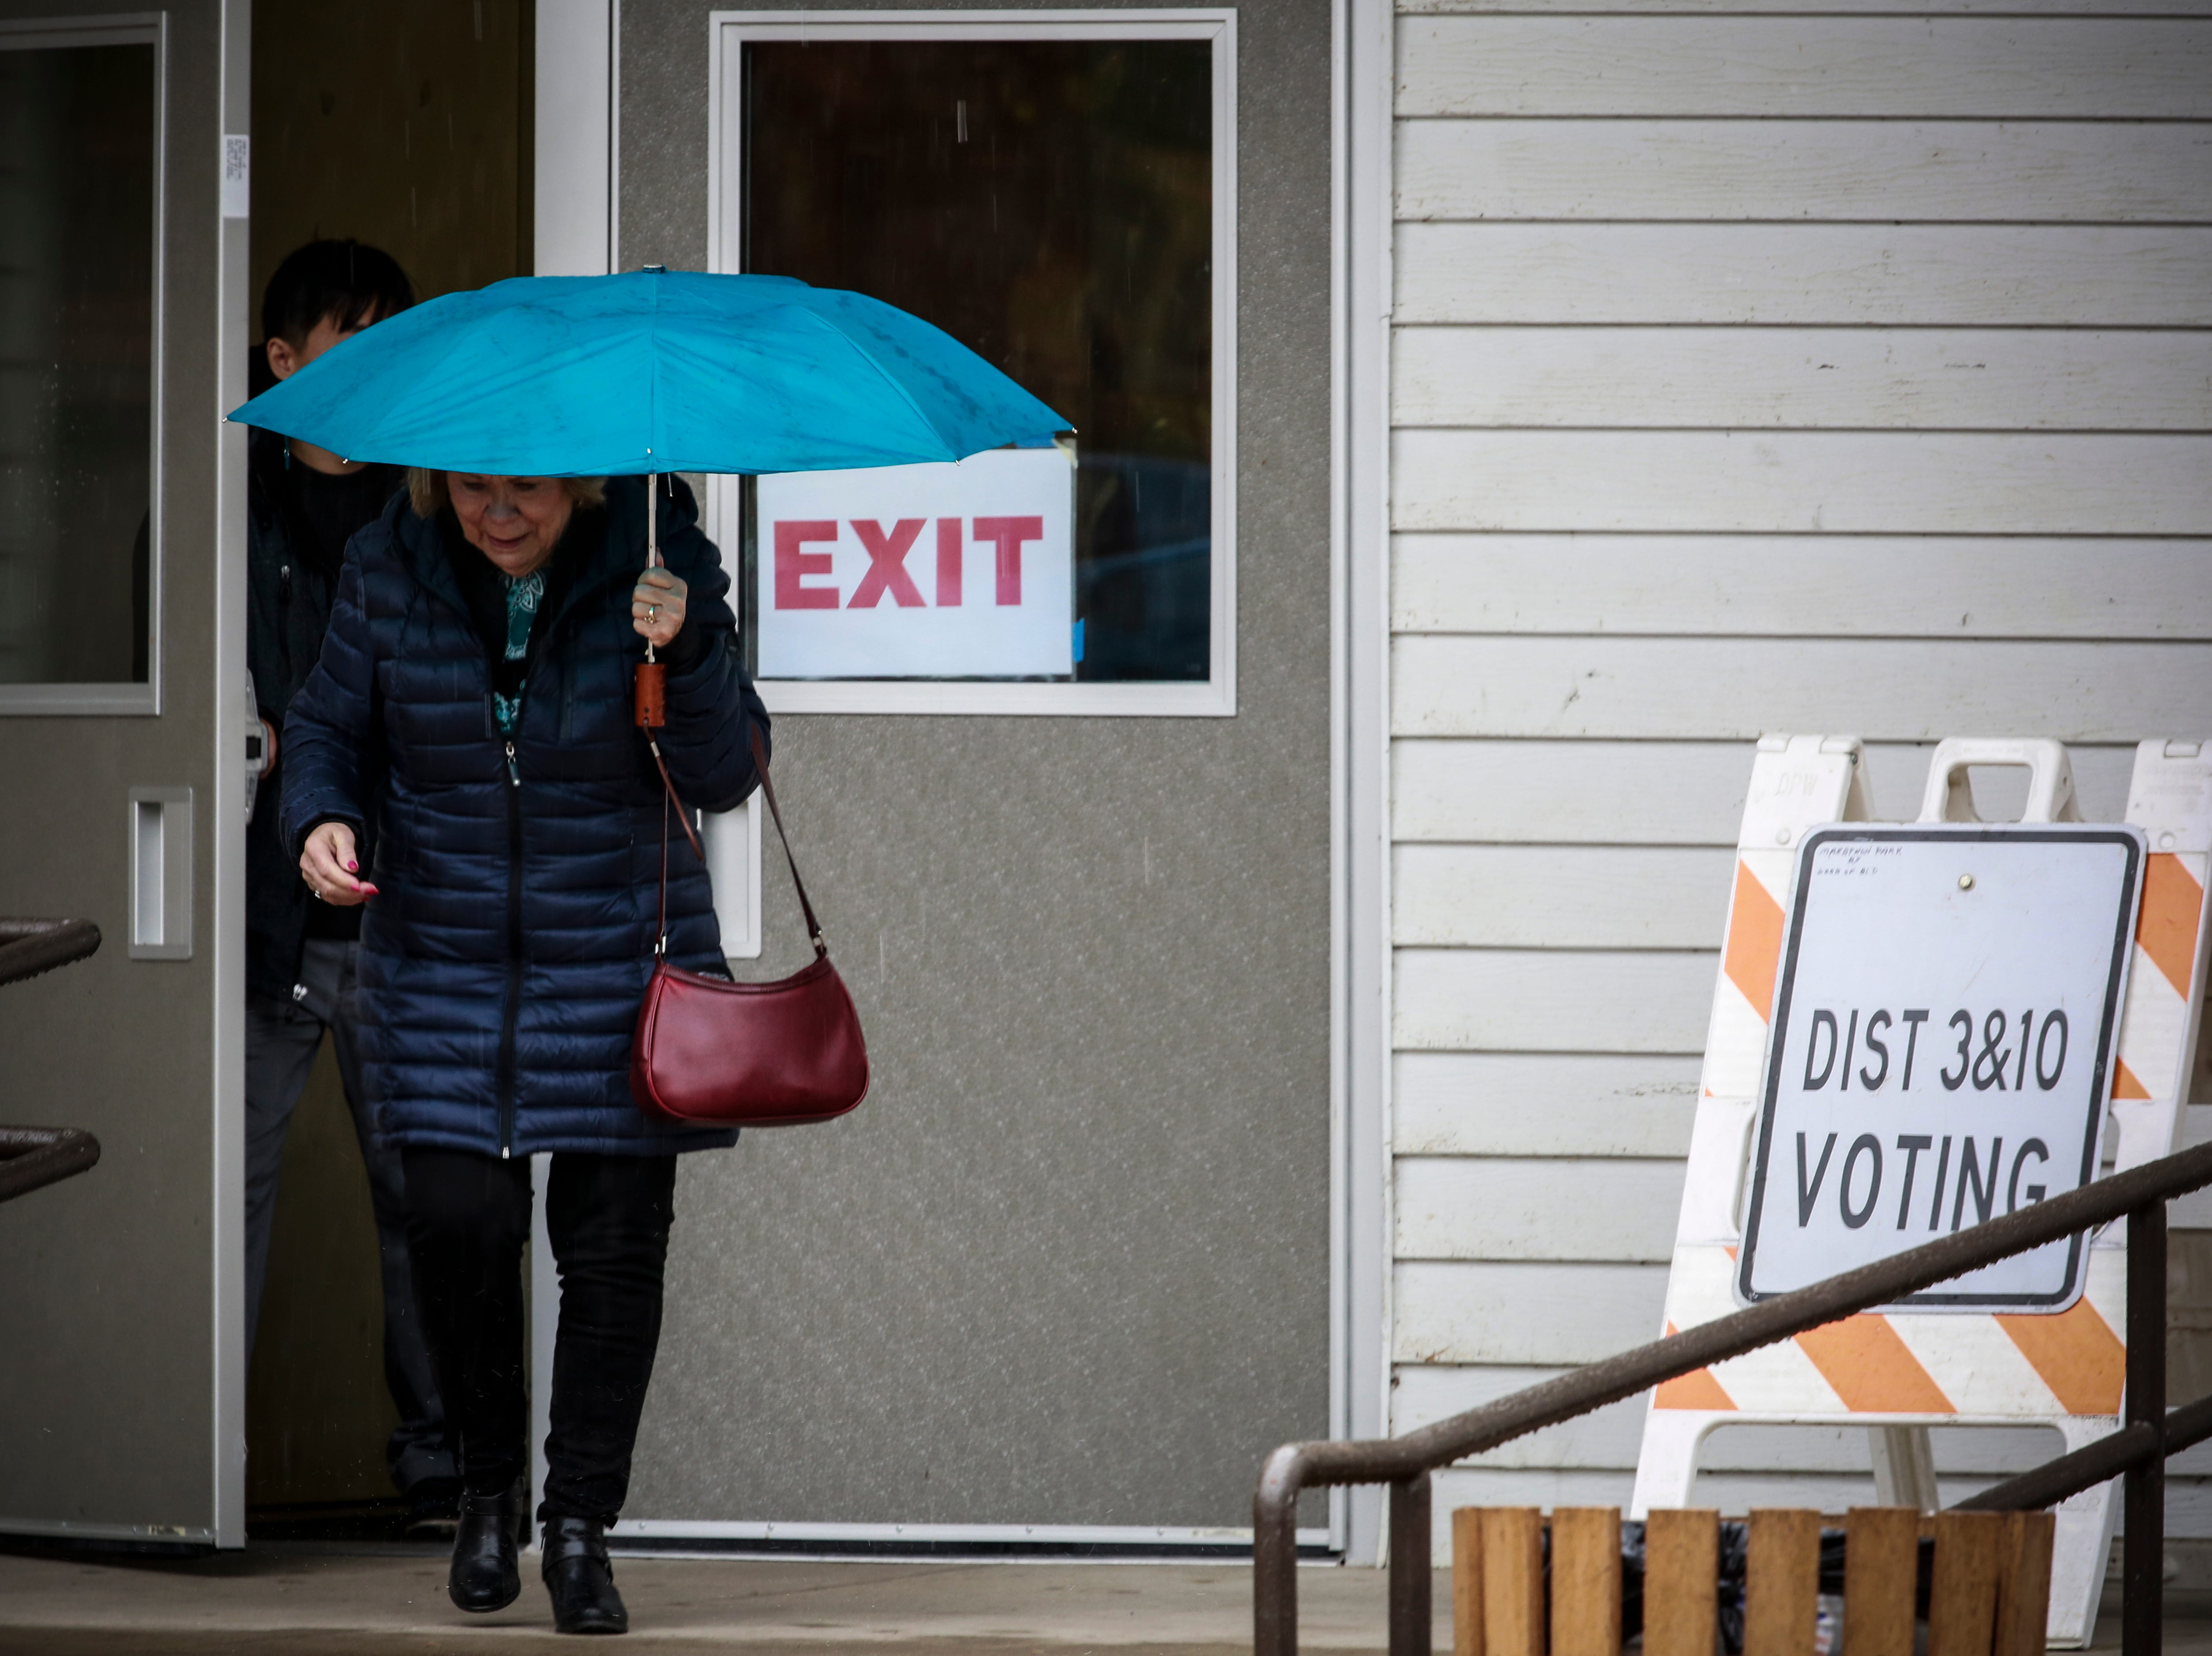 A voter leaving the voting polls Tuesday, Nov. 6, 2018, at the Youth Building in Marathon Park in Wausau, Wis. T'xer Zhon Kha/USA TODAY NETWORK-Wisconsin